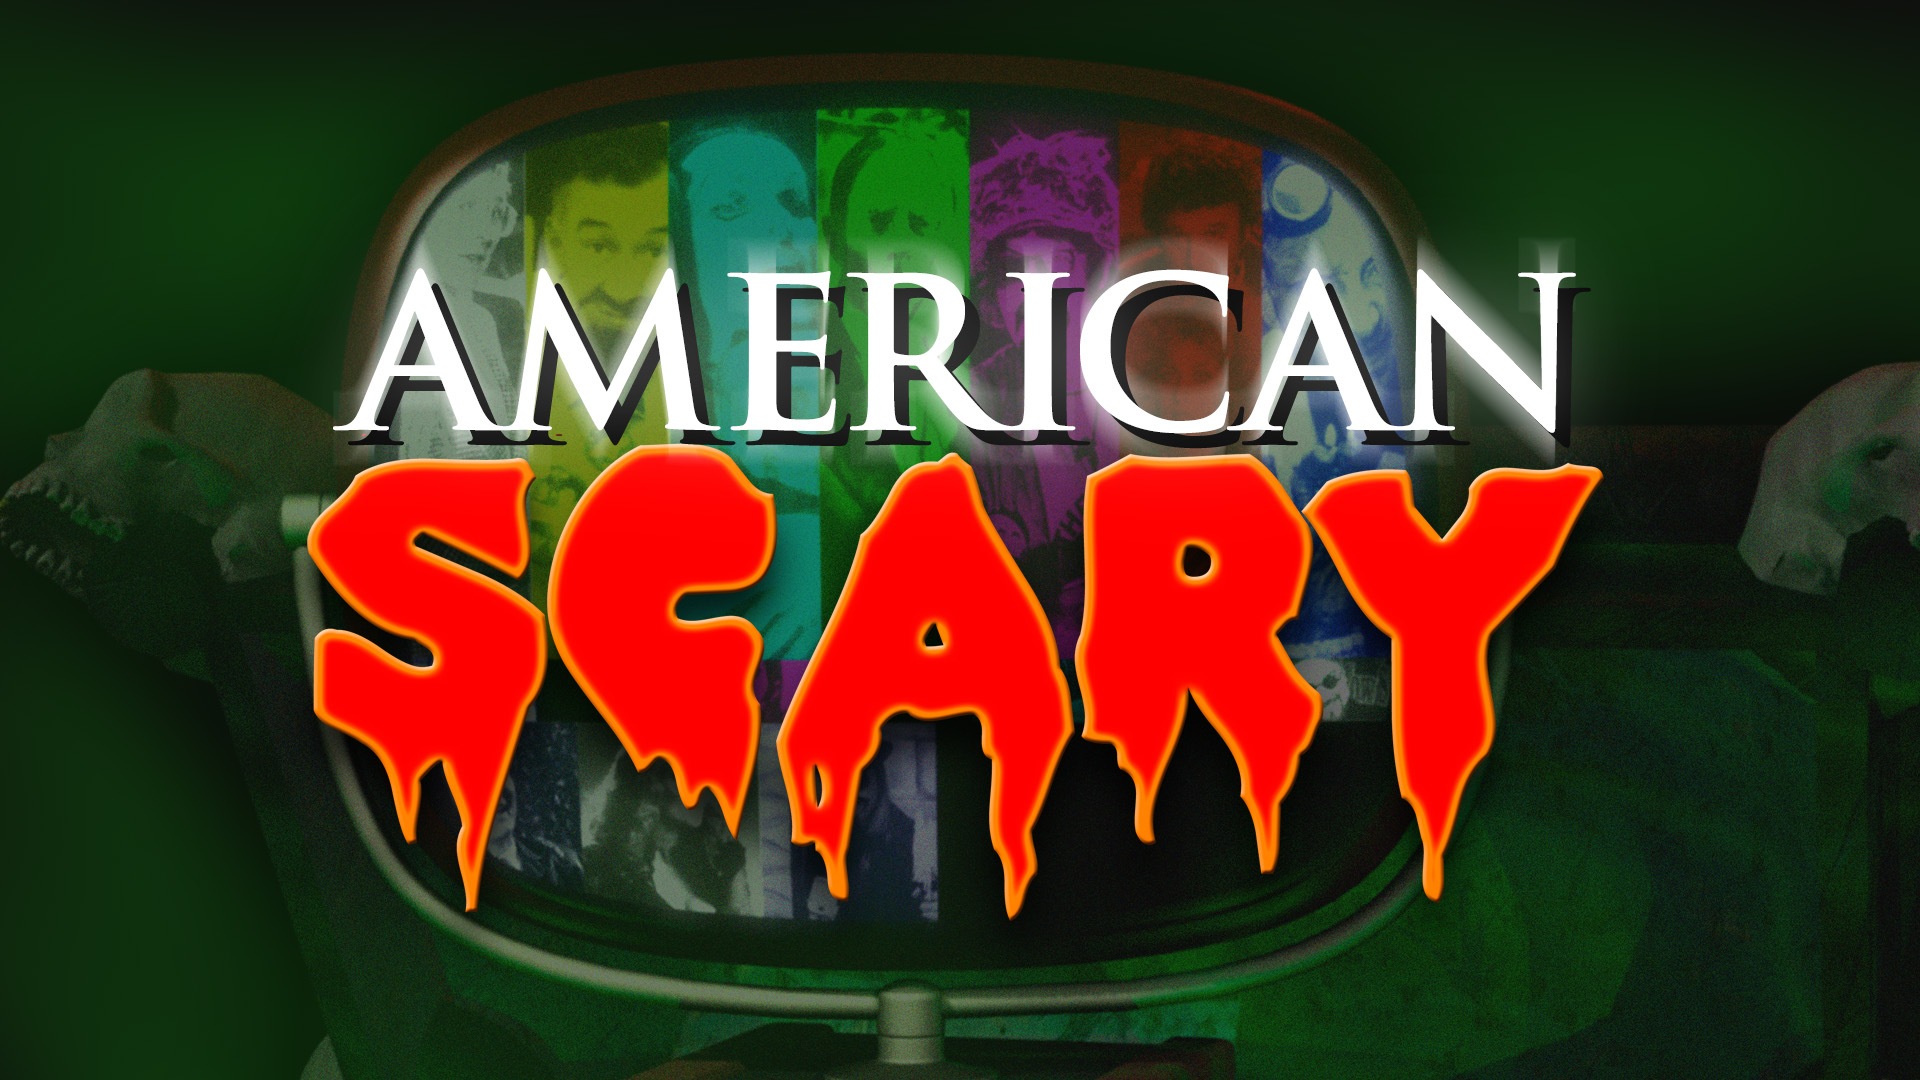 American Scary